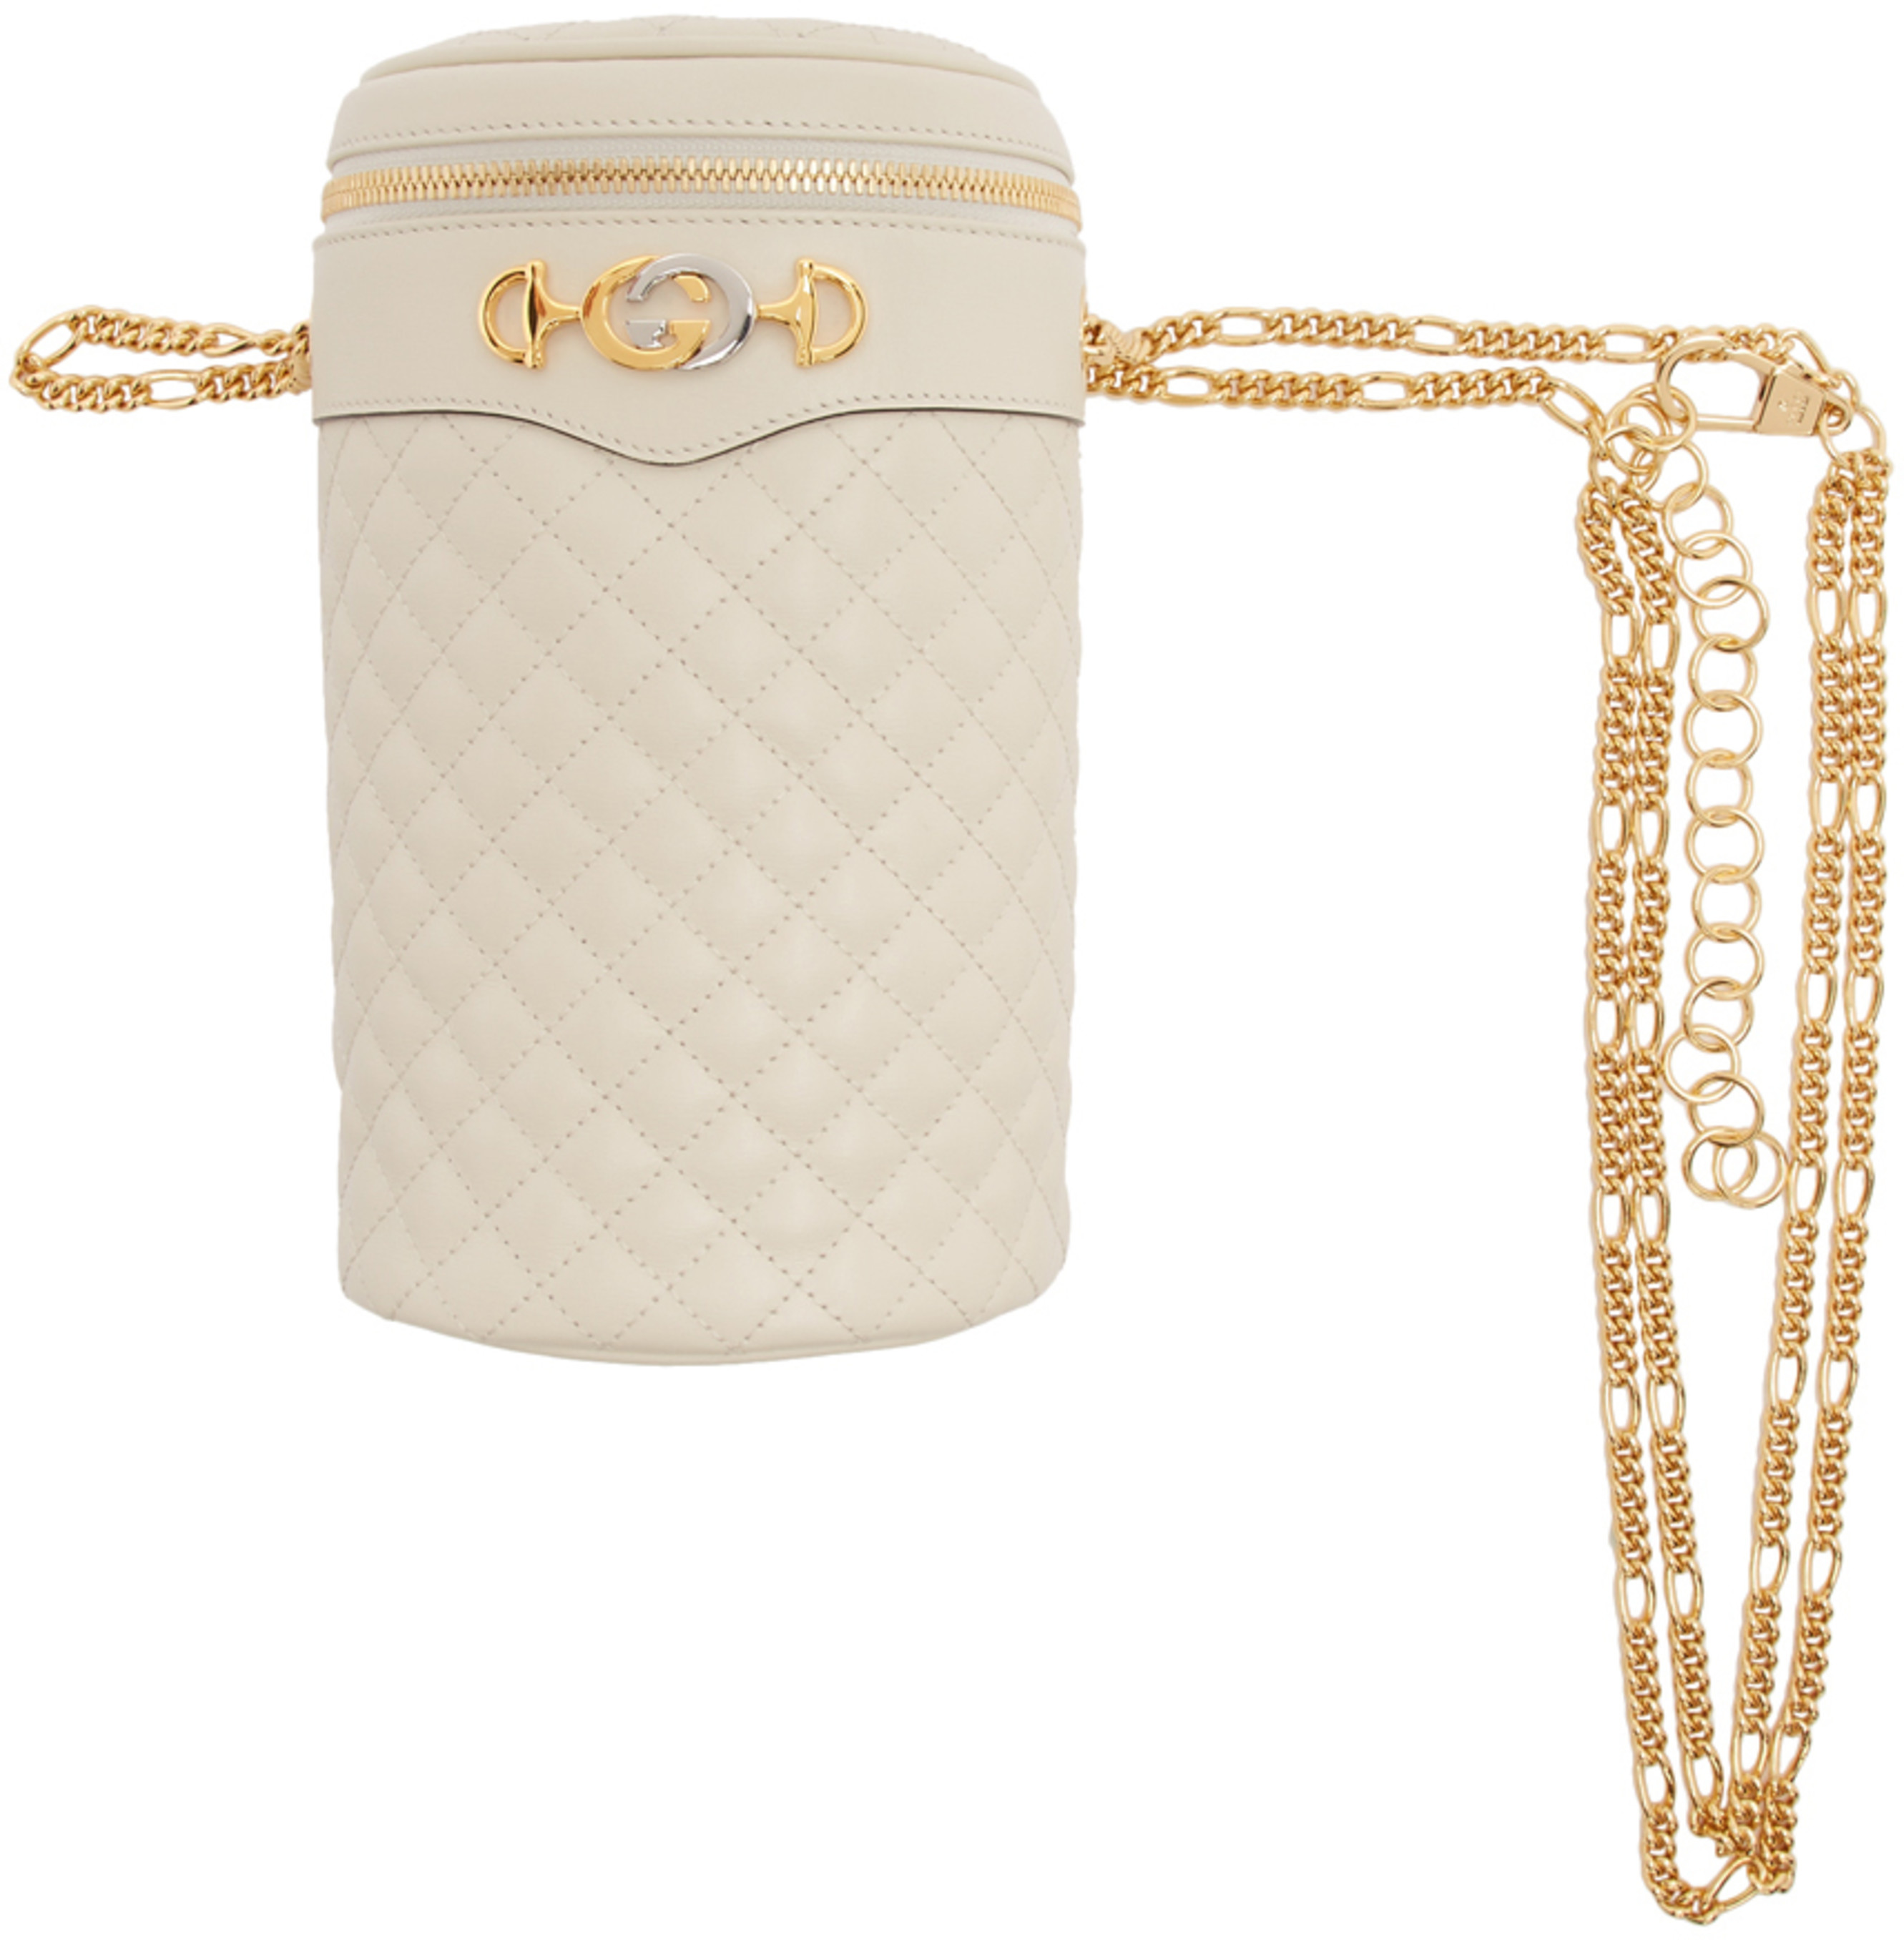 0297a55a25d Gucci bags for Women